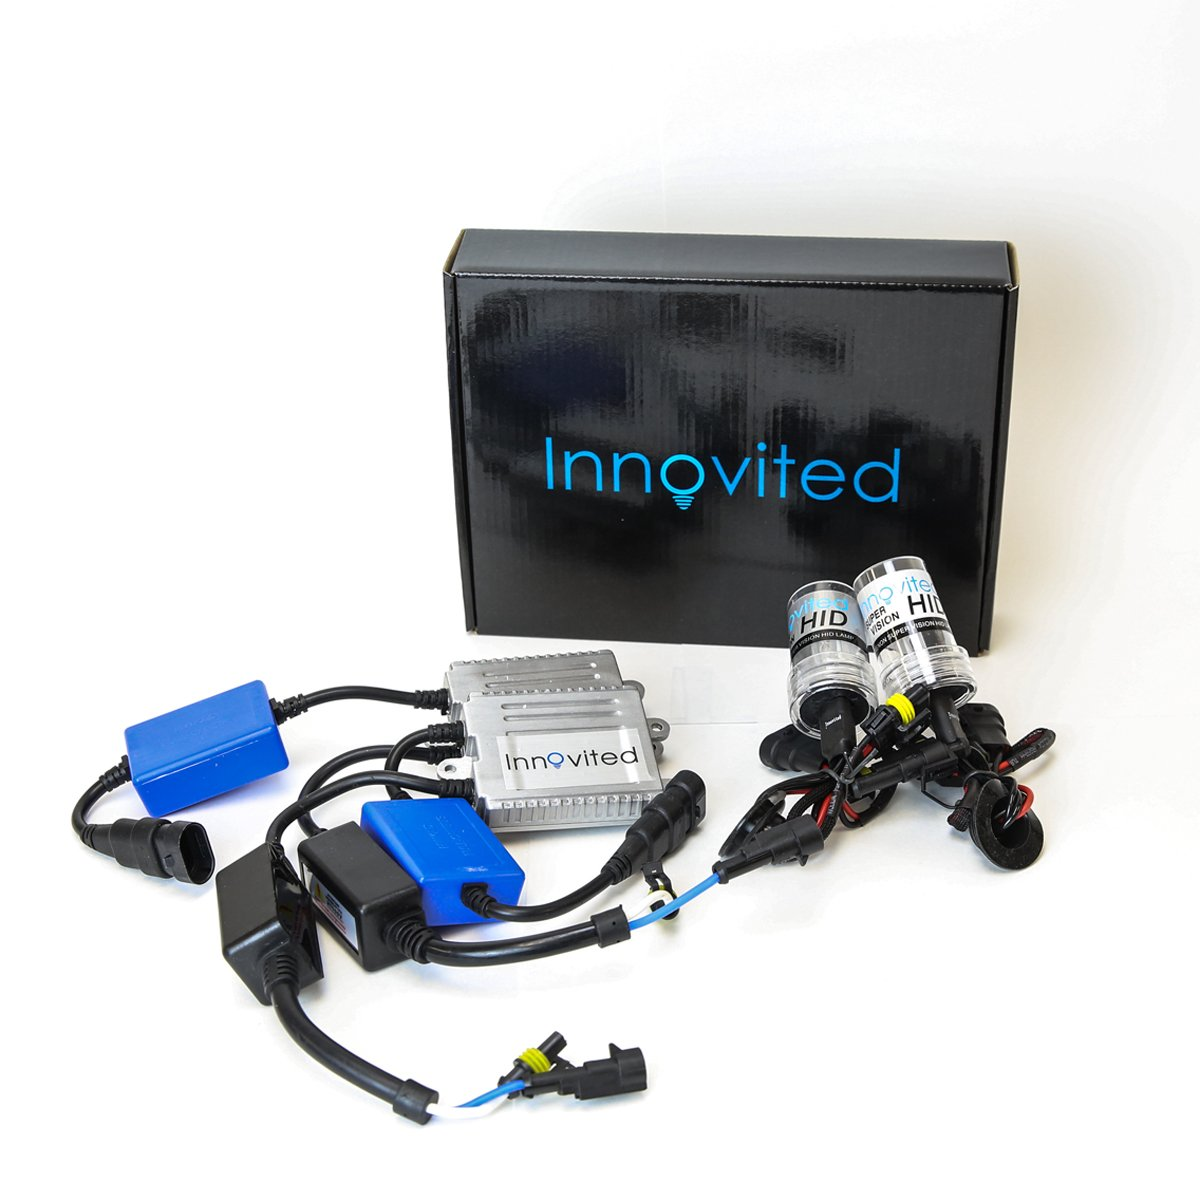 2 Year Warranty Innovited 35W AC Xenon HID LightsAll Bulb Sizes and Colors with Slim Ballast Diamond White H7-6000K